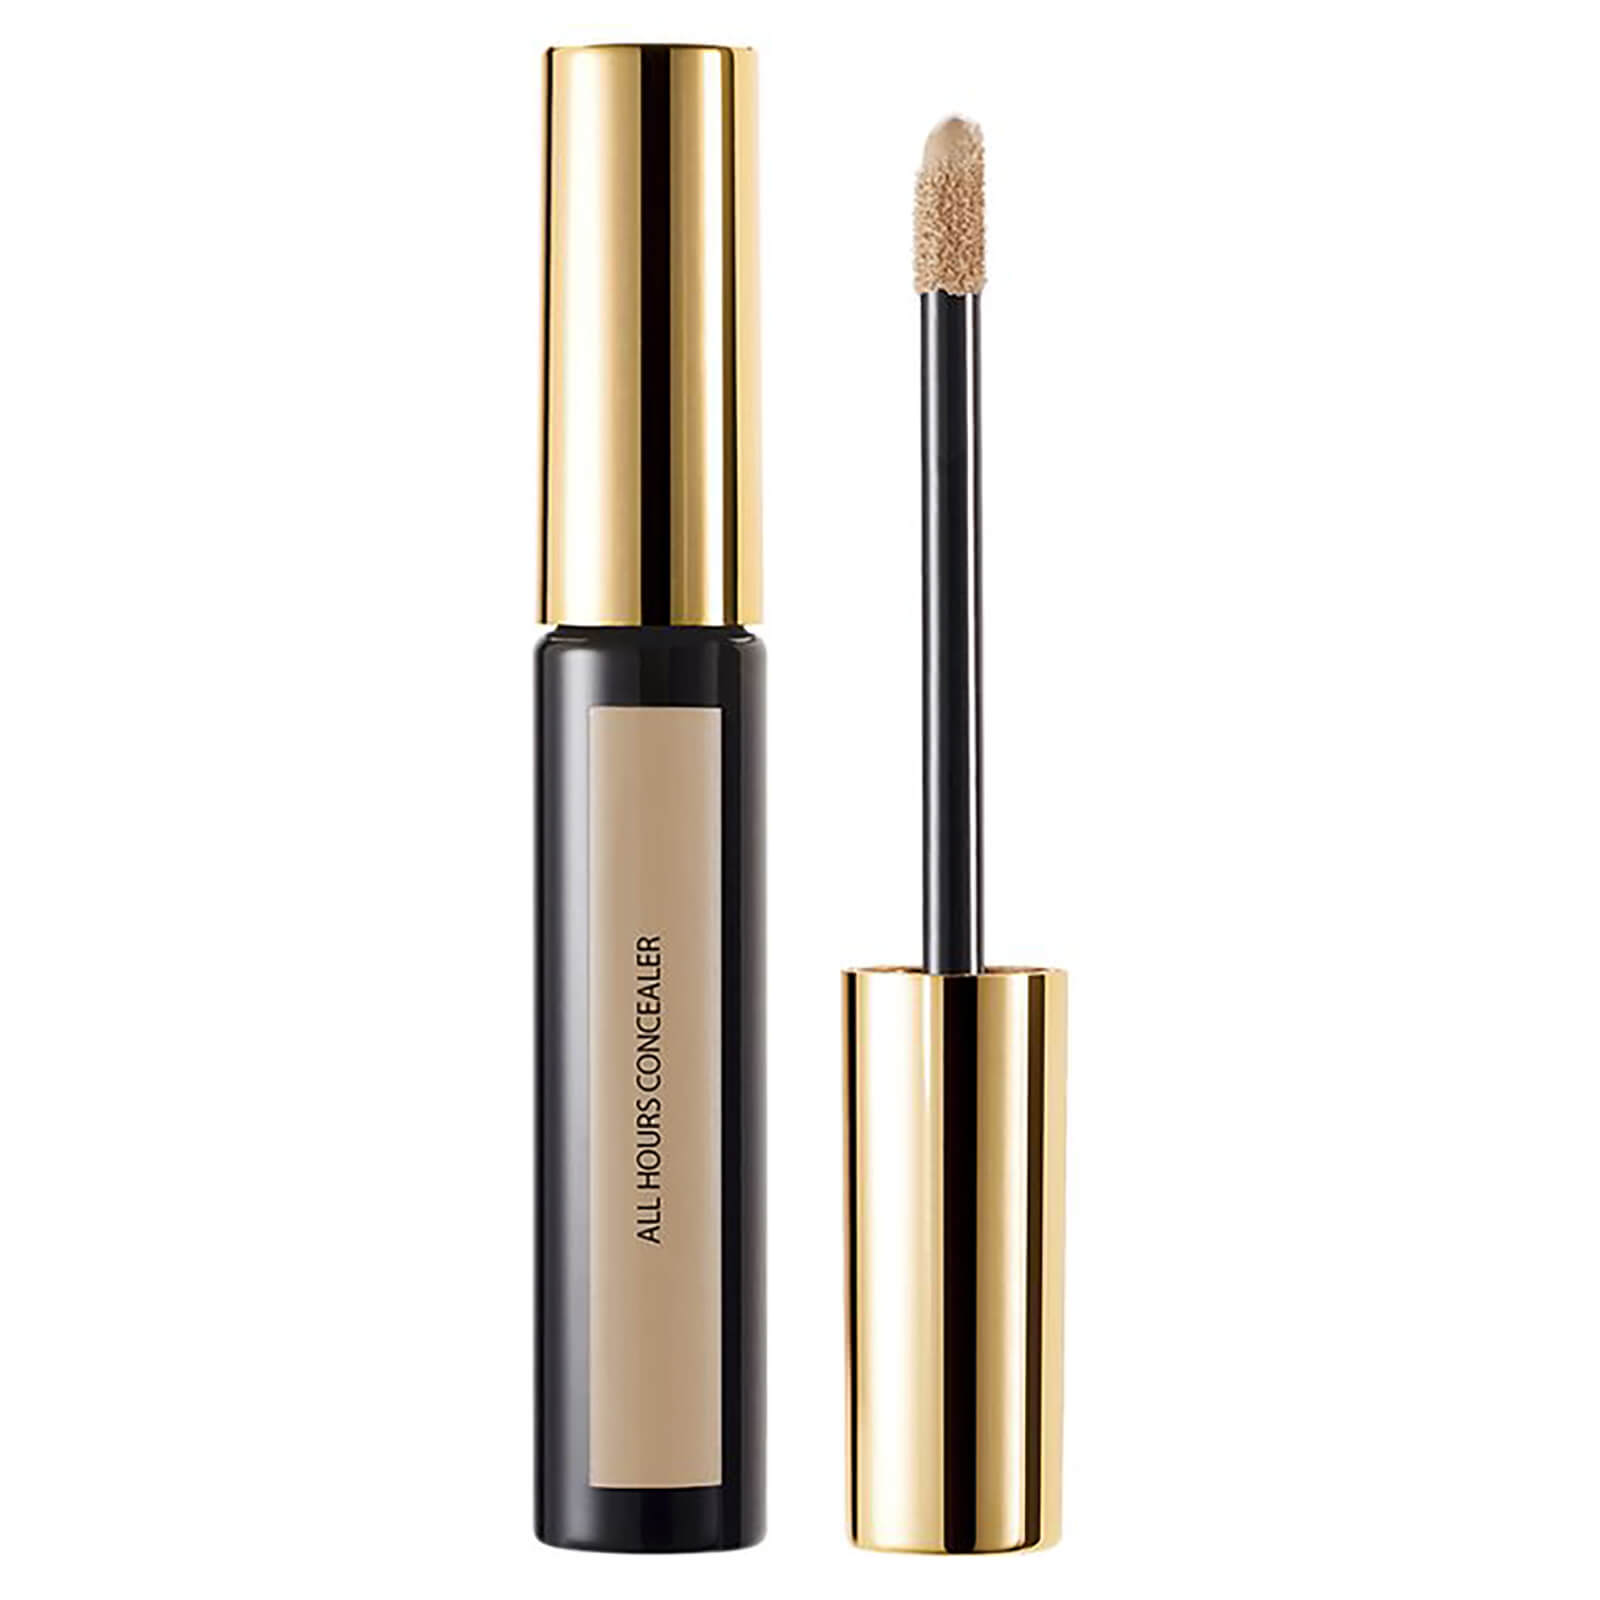 Yves Saint Laurent All Hours Concealer 5ml (Various Shades)